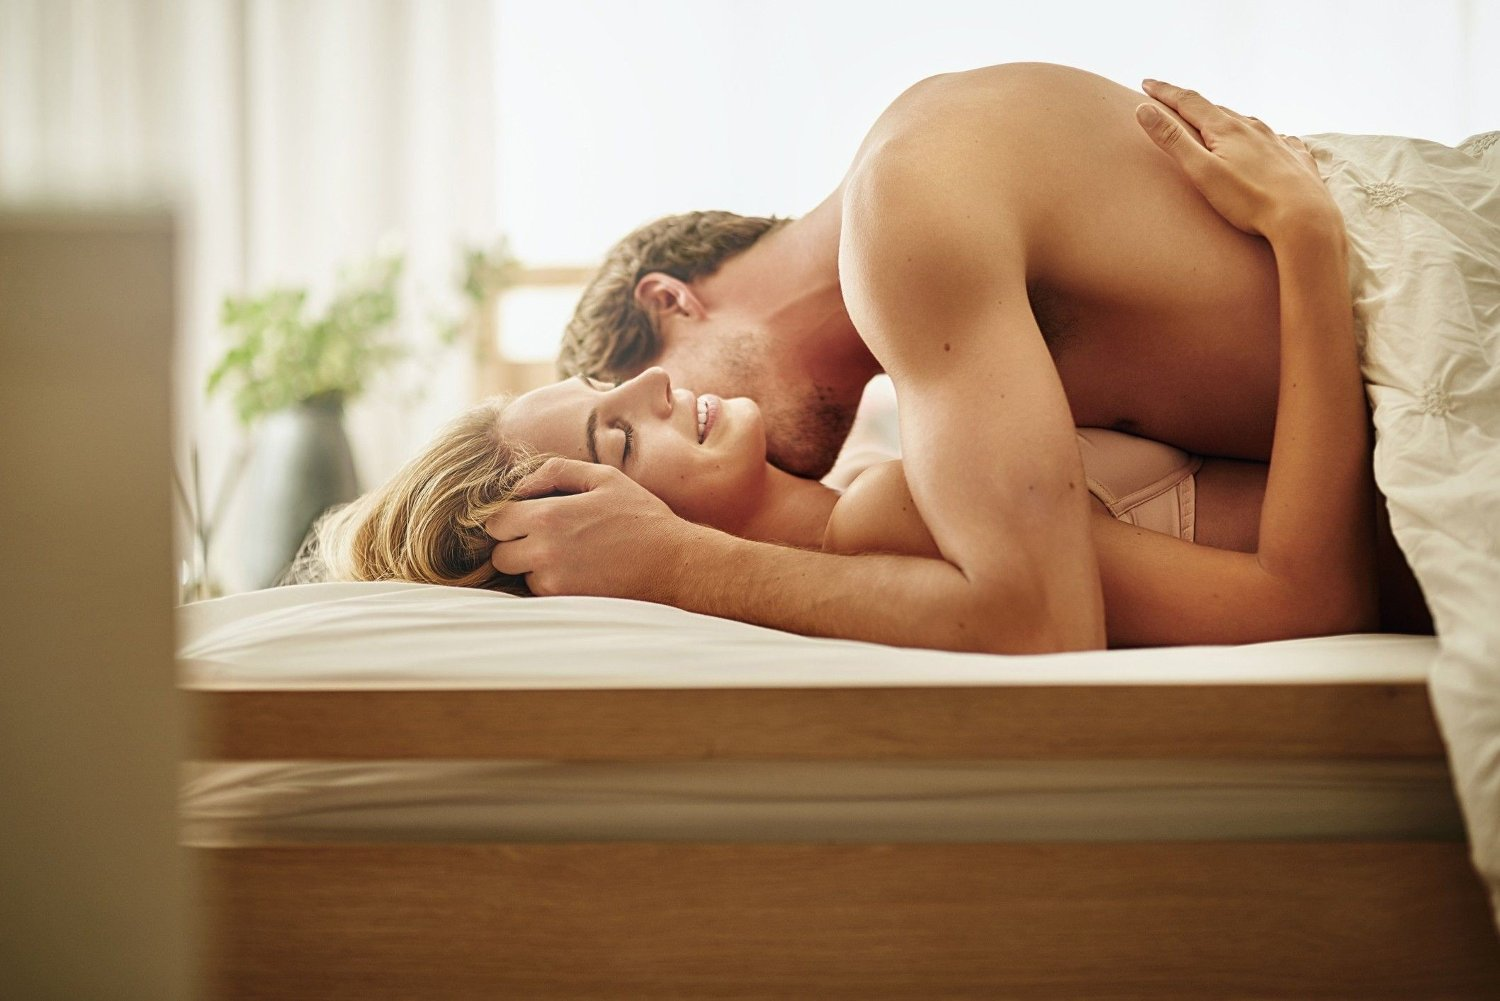 She loves it when he nuzzles her neck Shot of a young couple sharing an intimate moment in bed